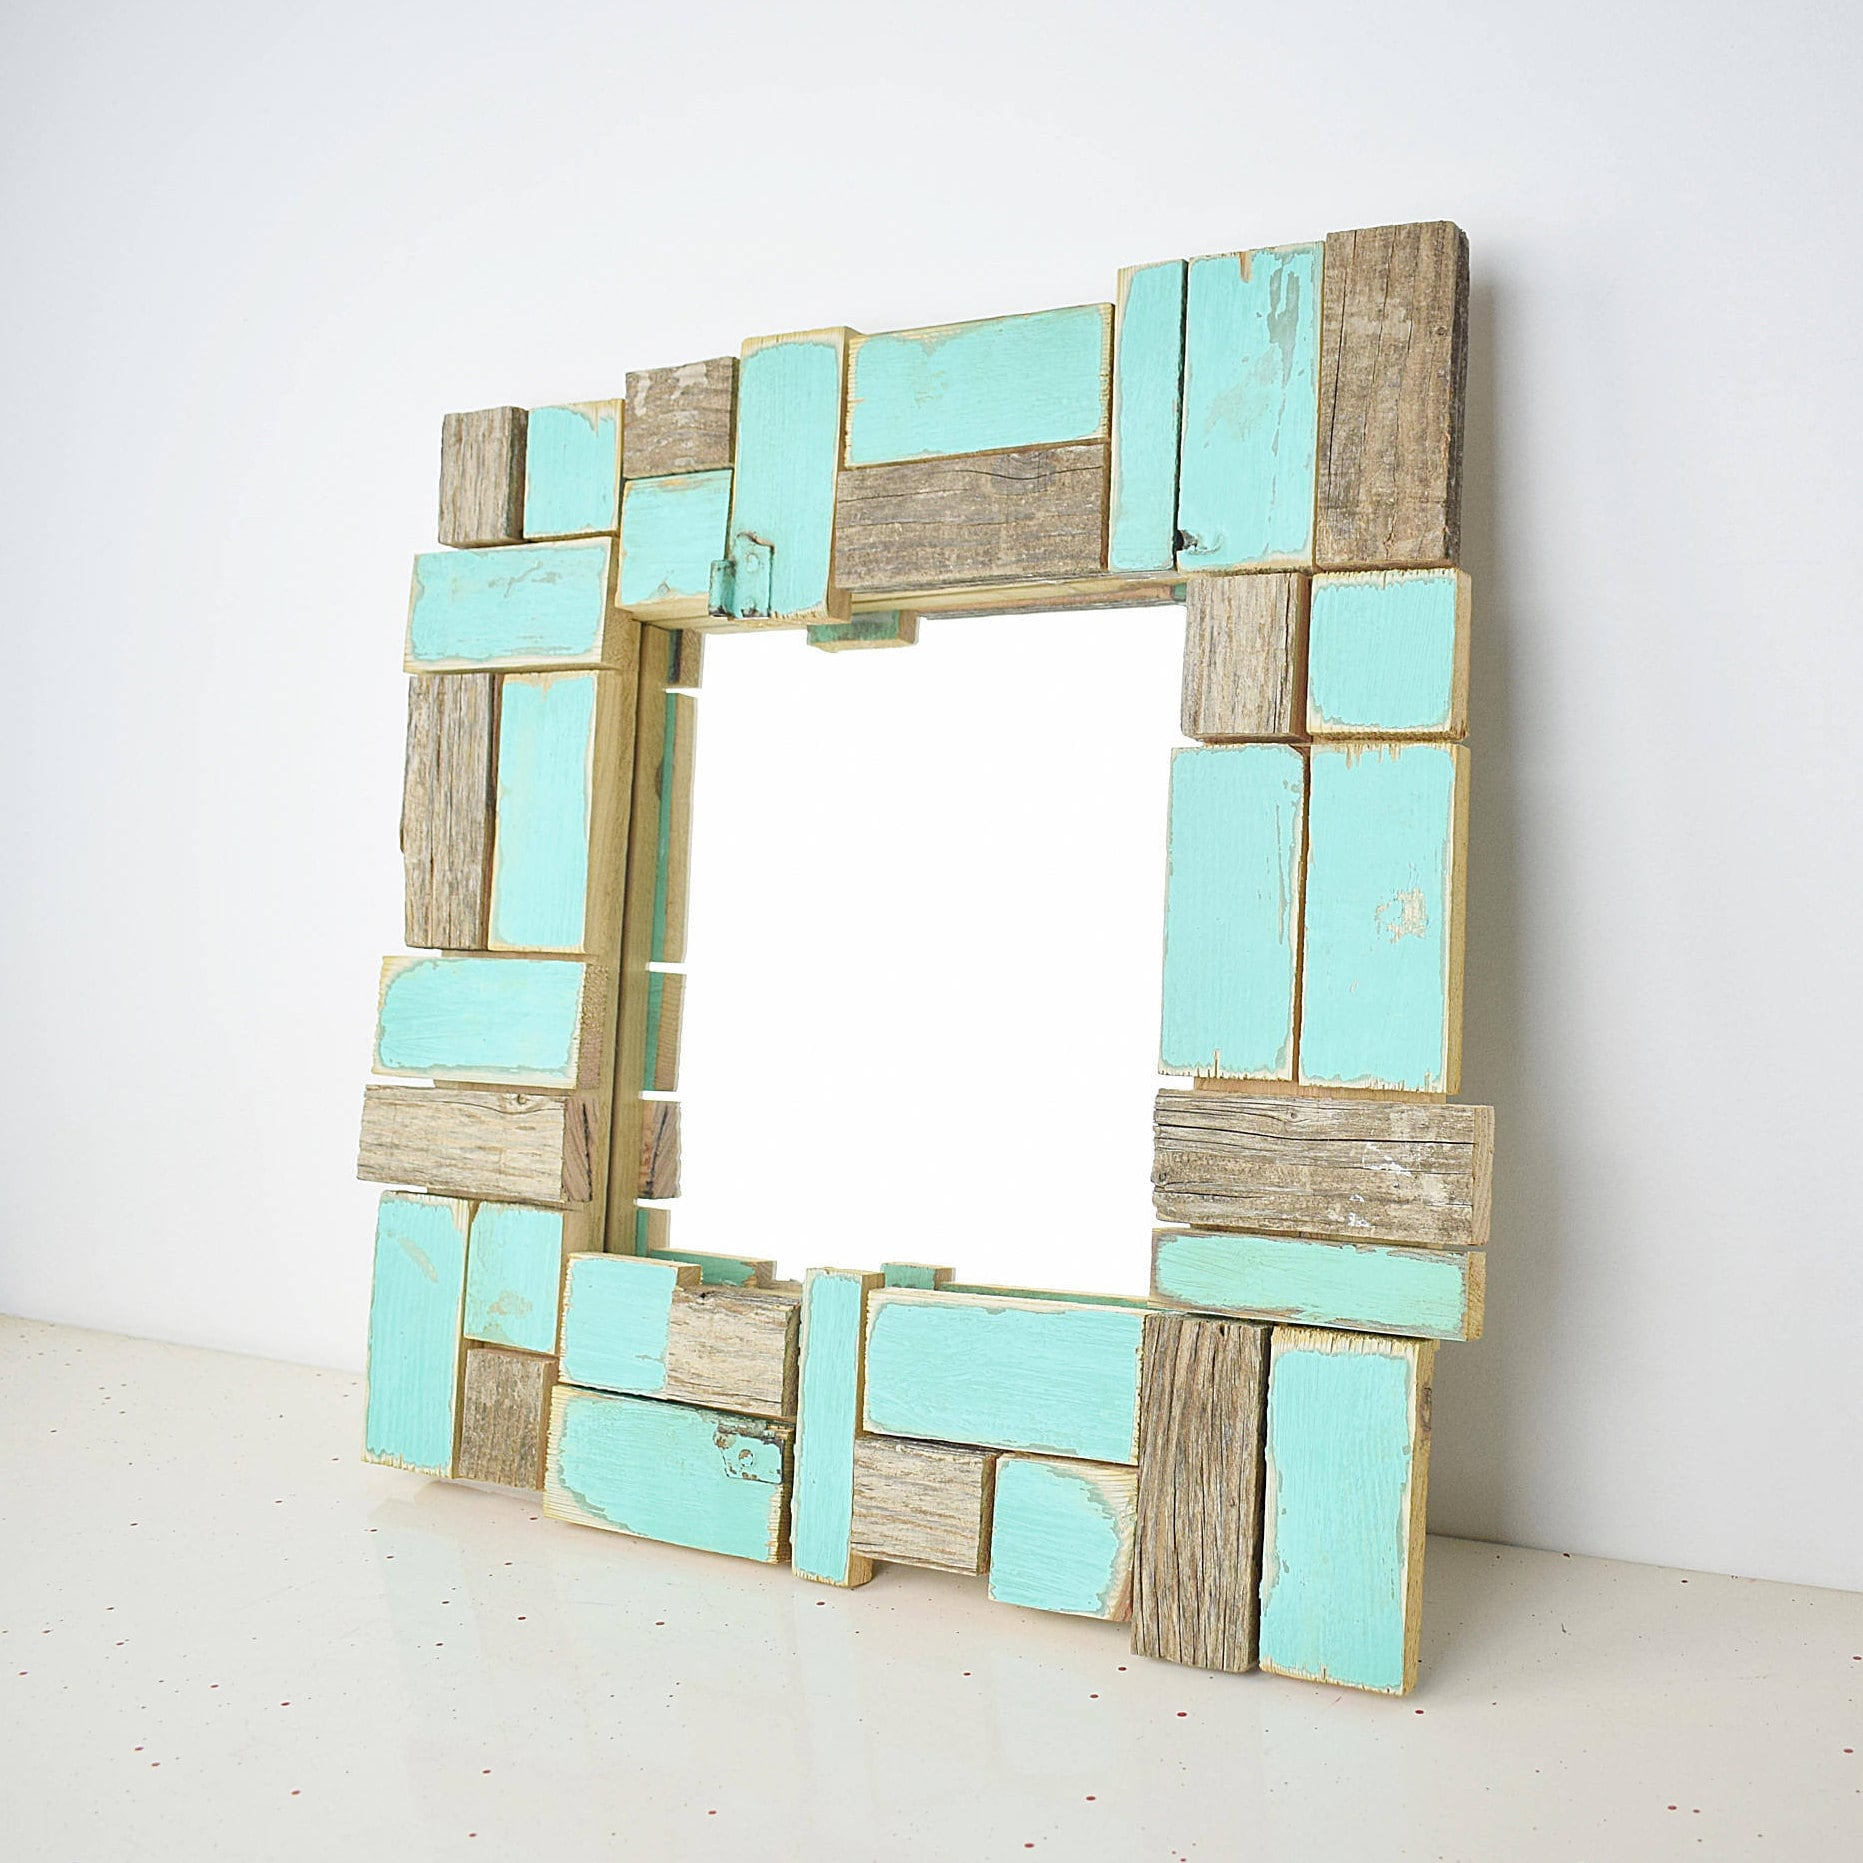 Fewe. Mosaic mirror frame, turquoise blue, antiqued wood polygonal ...